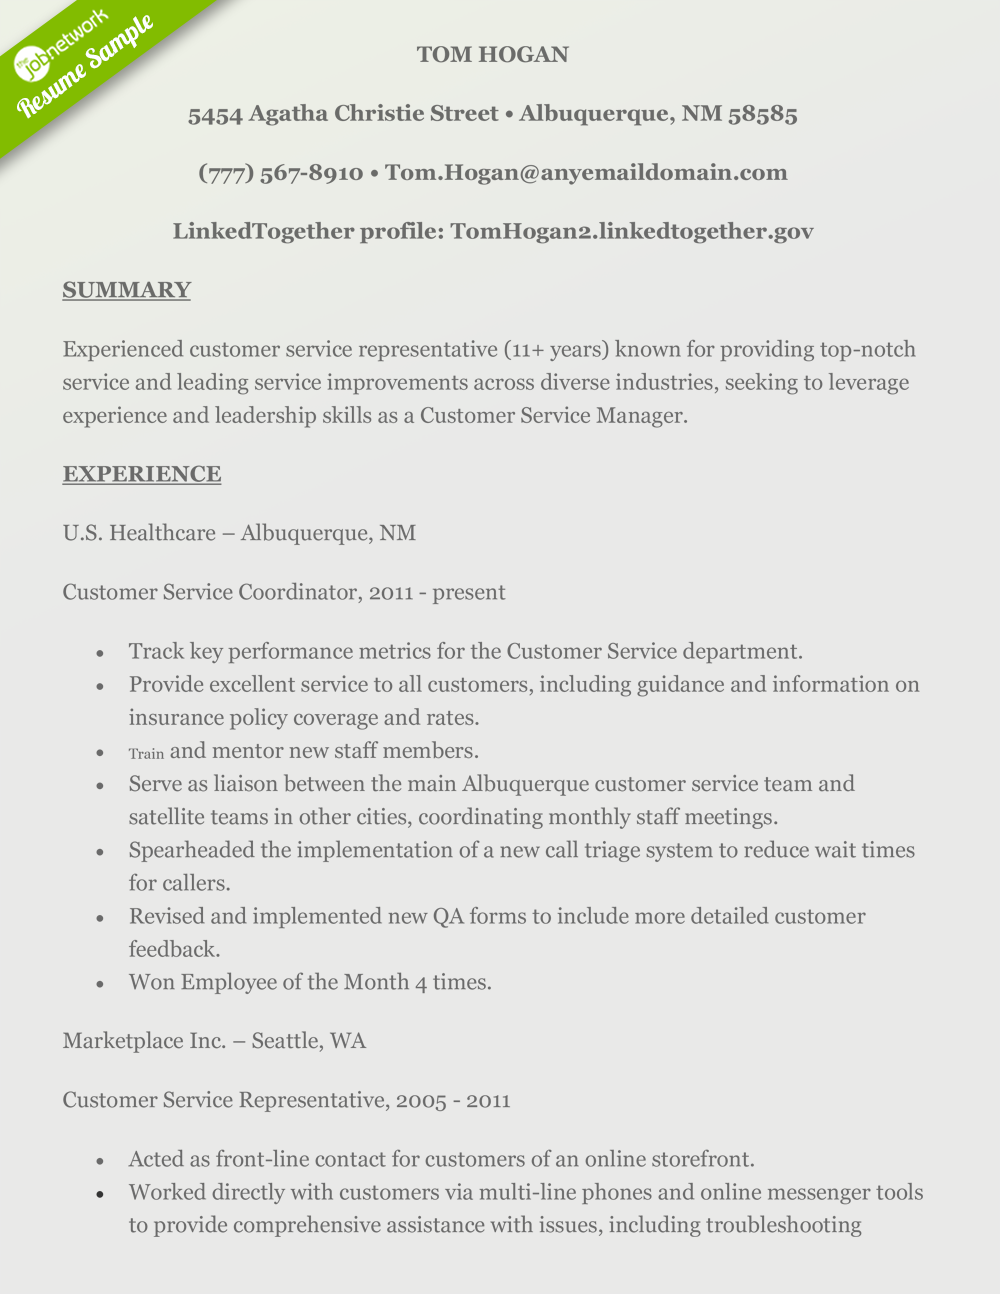 Tom Hogan Resume  Customer Service Resume